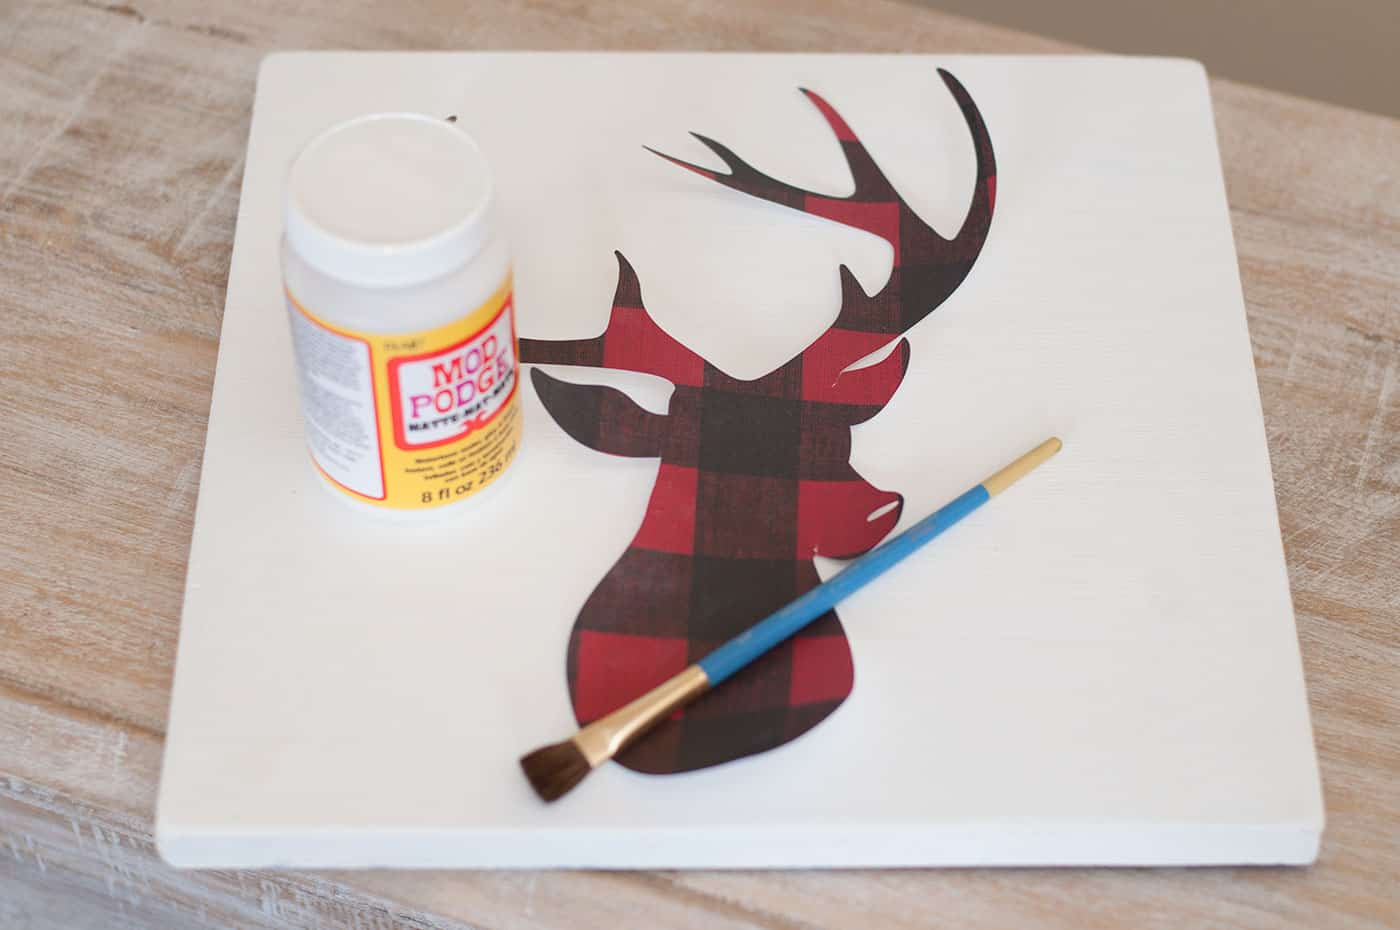 White wood piece, plaid deer head cut out of scrapbook paper, Mod Podge Matte, and a paintbrush